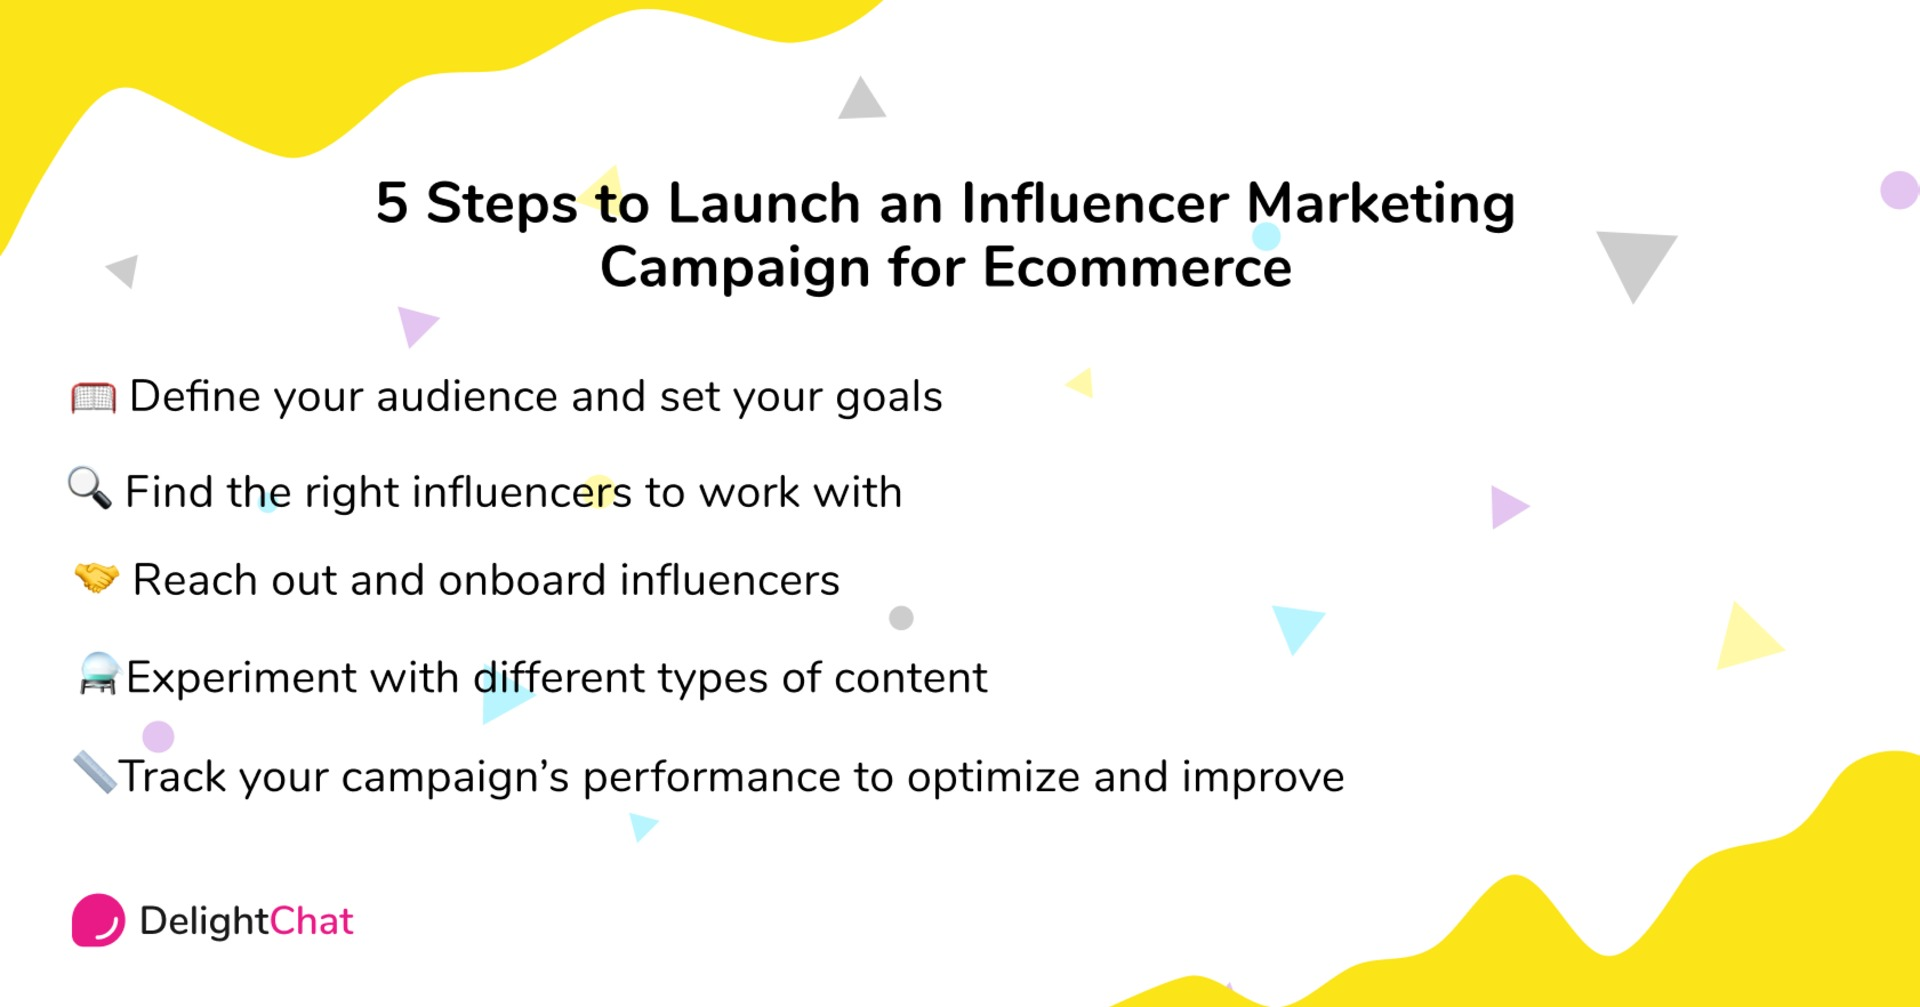 Winkl on Influencer Marketing - Steps to Launch an Influencer Marketing Campaign for Ecommerce